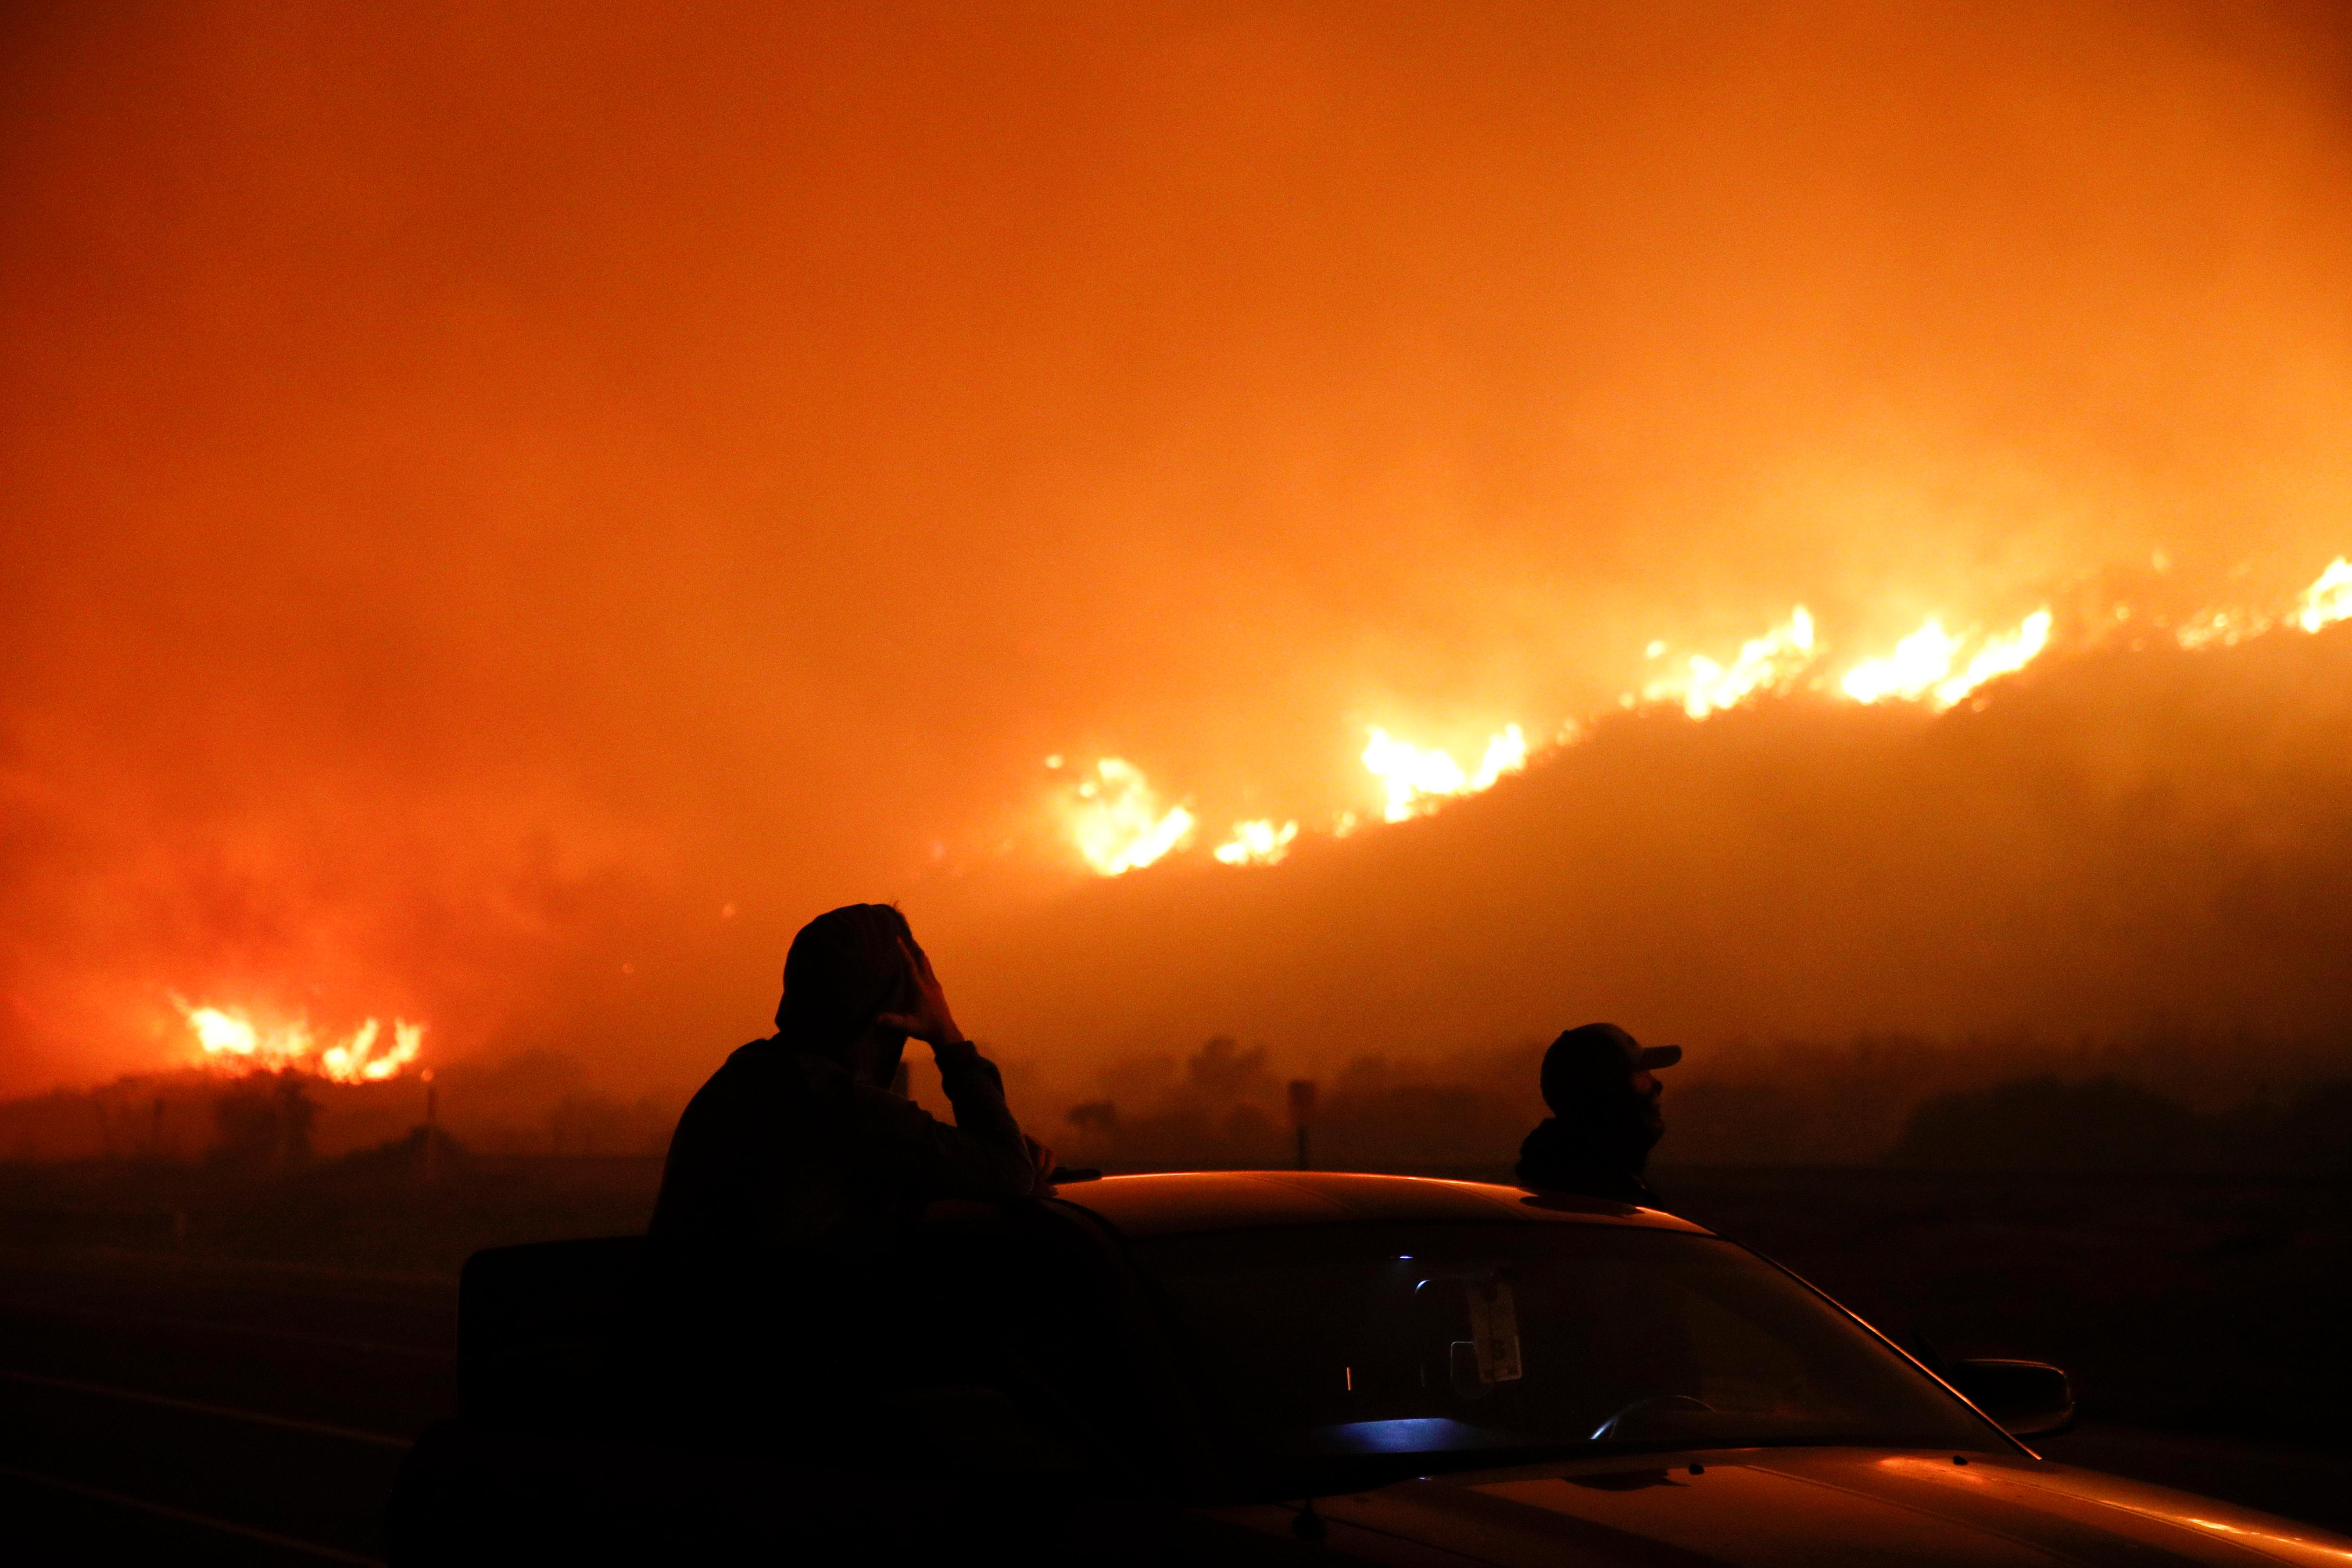 Two spectators watch as a wildfire burns along the 101 Freeway Tuesday, Dec. 5, 2017, in Ventura, Calif. Raked by ferocious Santa Ana winds, explosive wildfires northwest of Los Angeles and in the city's foothills burned a psychiatric hospital and scores of homes and other structures Tuesday and forced the evacuation of tens of thousands of people. (AP Photo/Jae C. Hong)